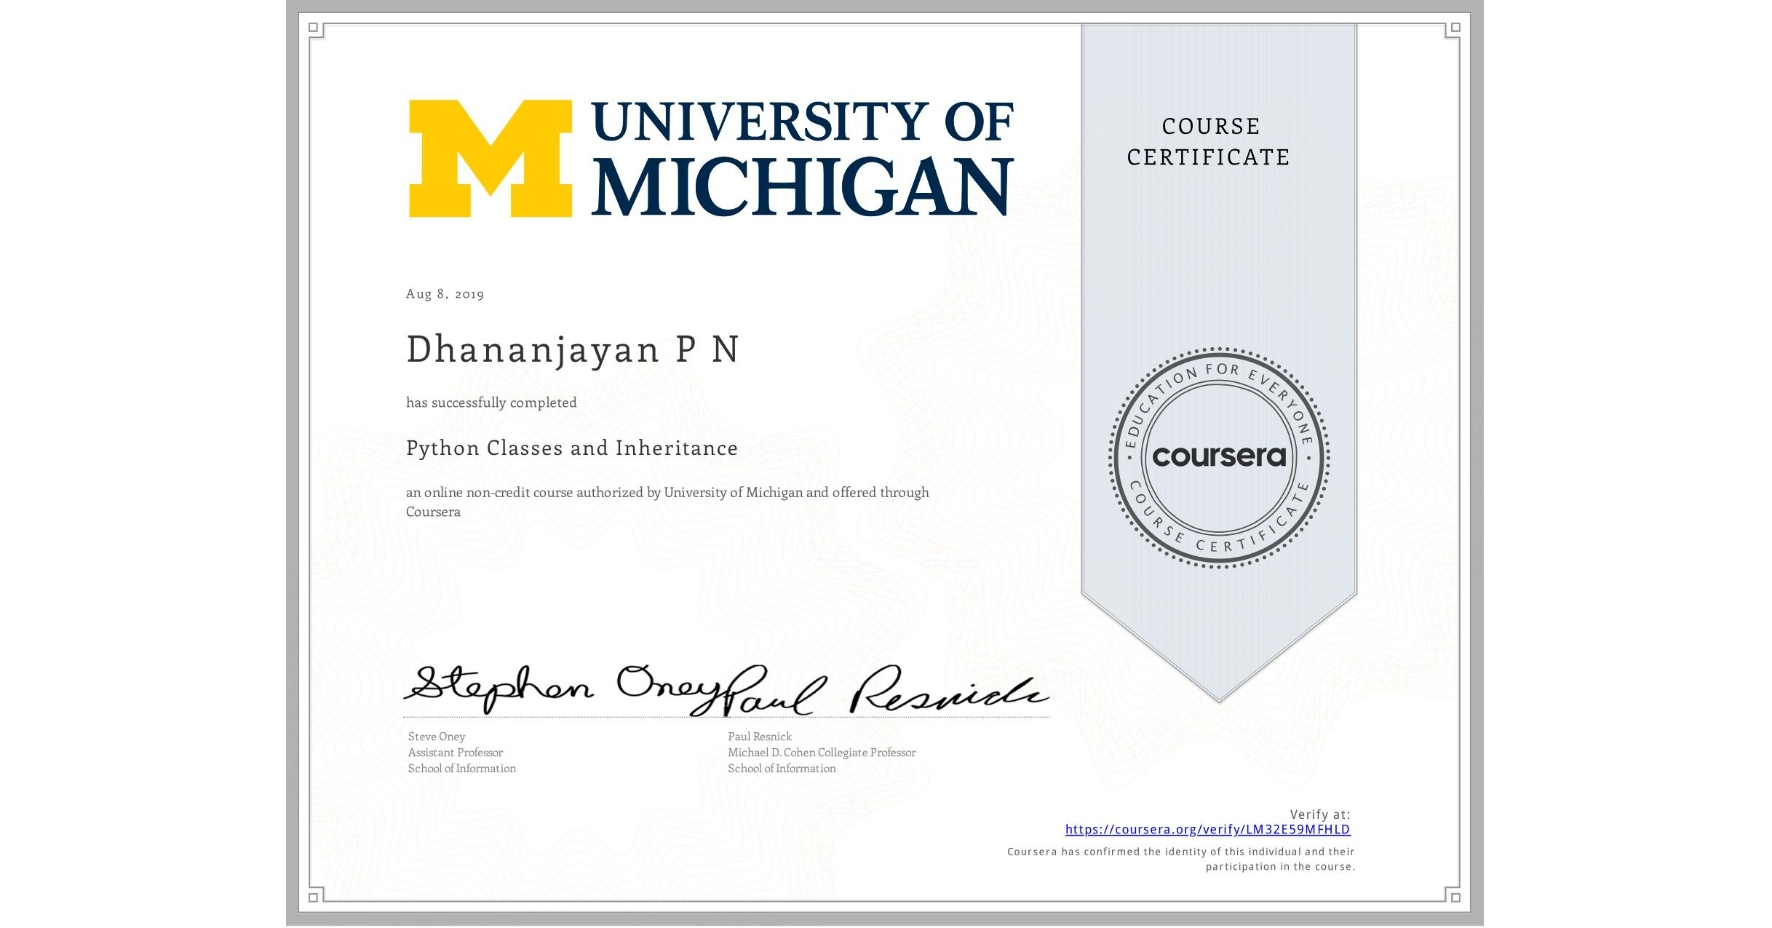 View certificate for Dhananjayan P N, Python Classes and Inheritance, an online non-credit course authorized by University of Michigan and offered through Coursera